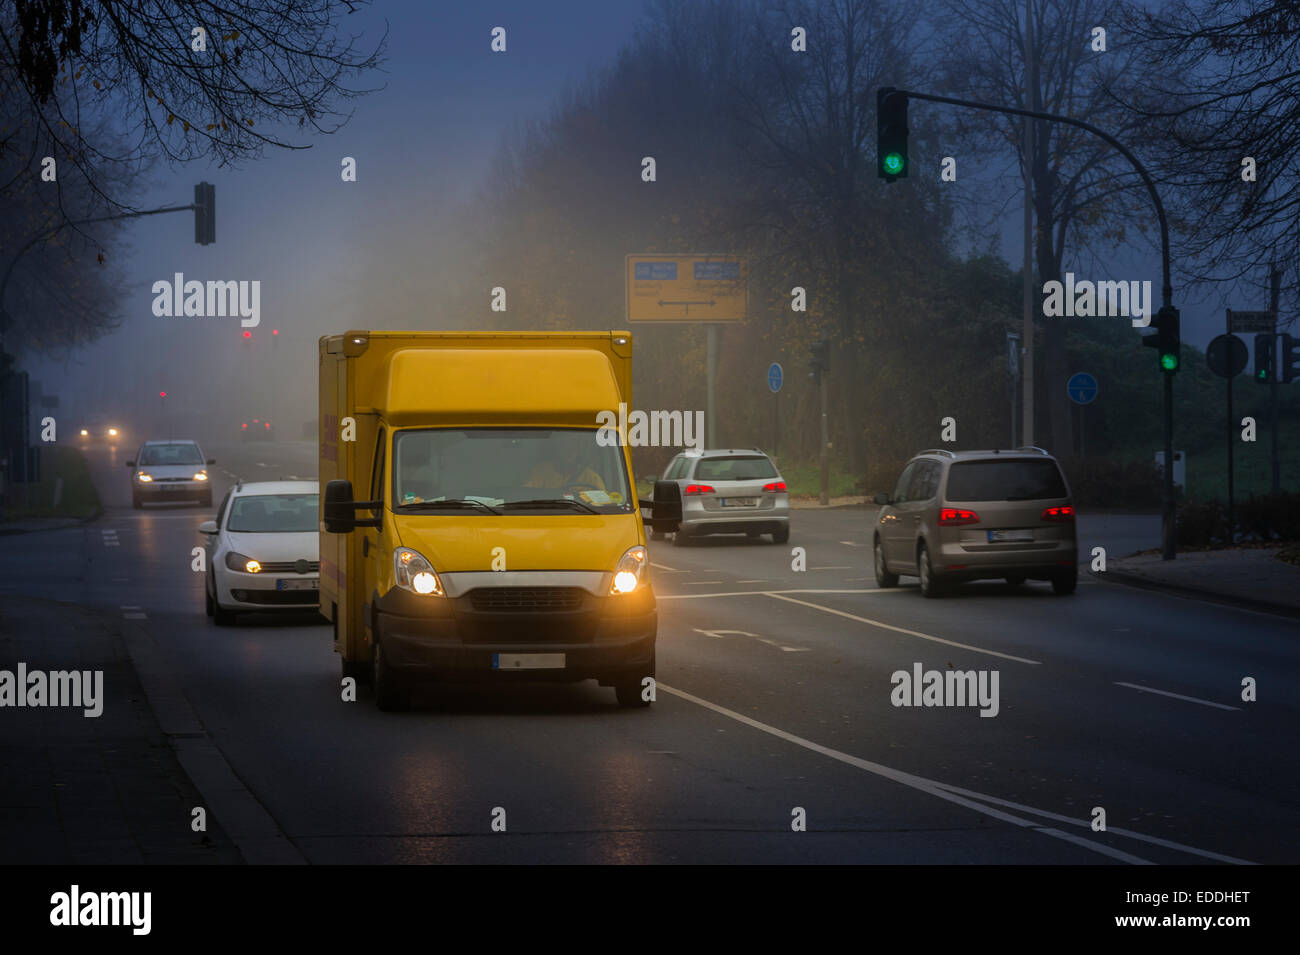 Germany, Grevenbroich, road traffic on dull November morning - Stock Image